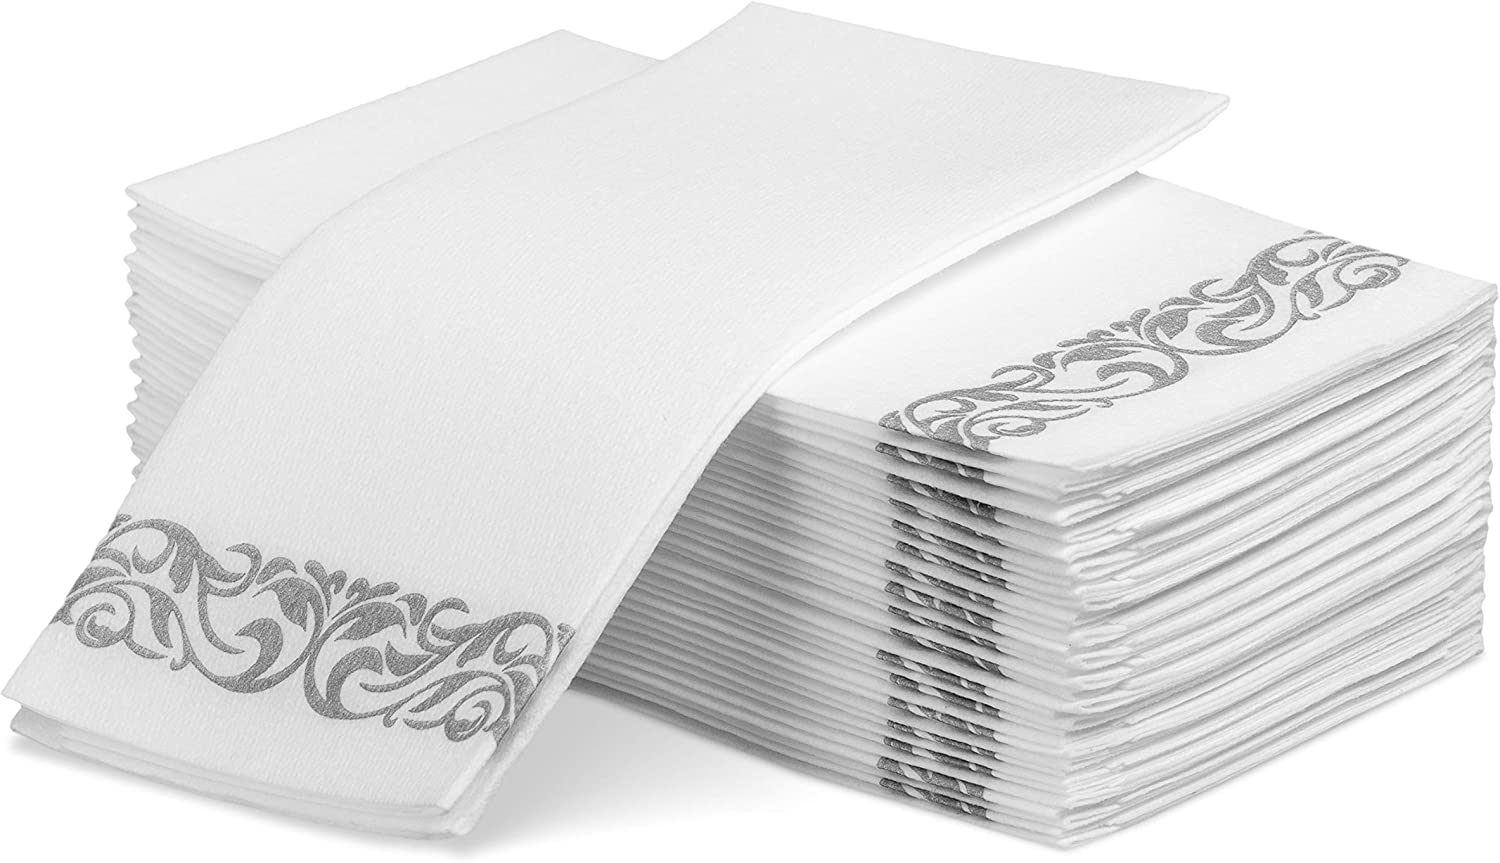 Laura Stein Linen-Feel Disposable Guest Towels (White with Silver Design, 50 Count) | Quality, Elegant, Soft, Absorbent Hand Napkins for Wedding Receptions, Restaurants, Bathrooms, Kitchens or Events